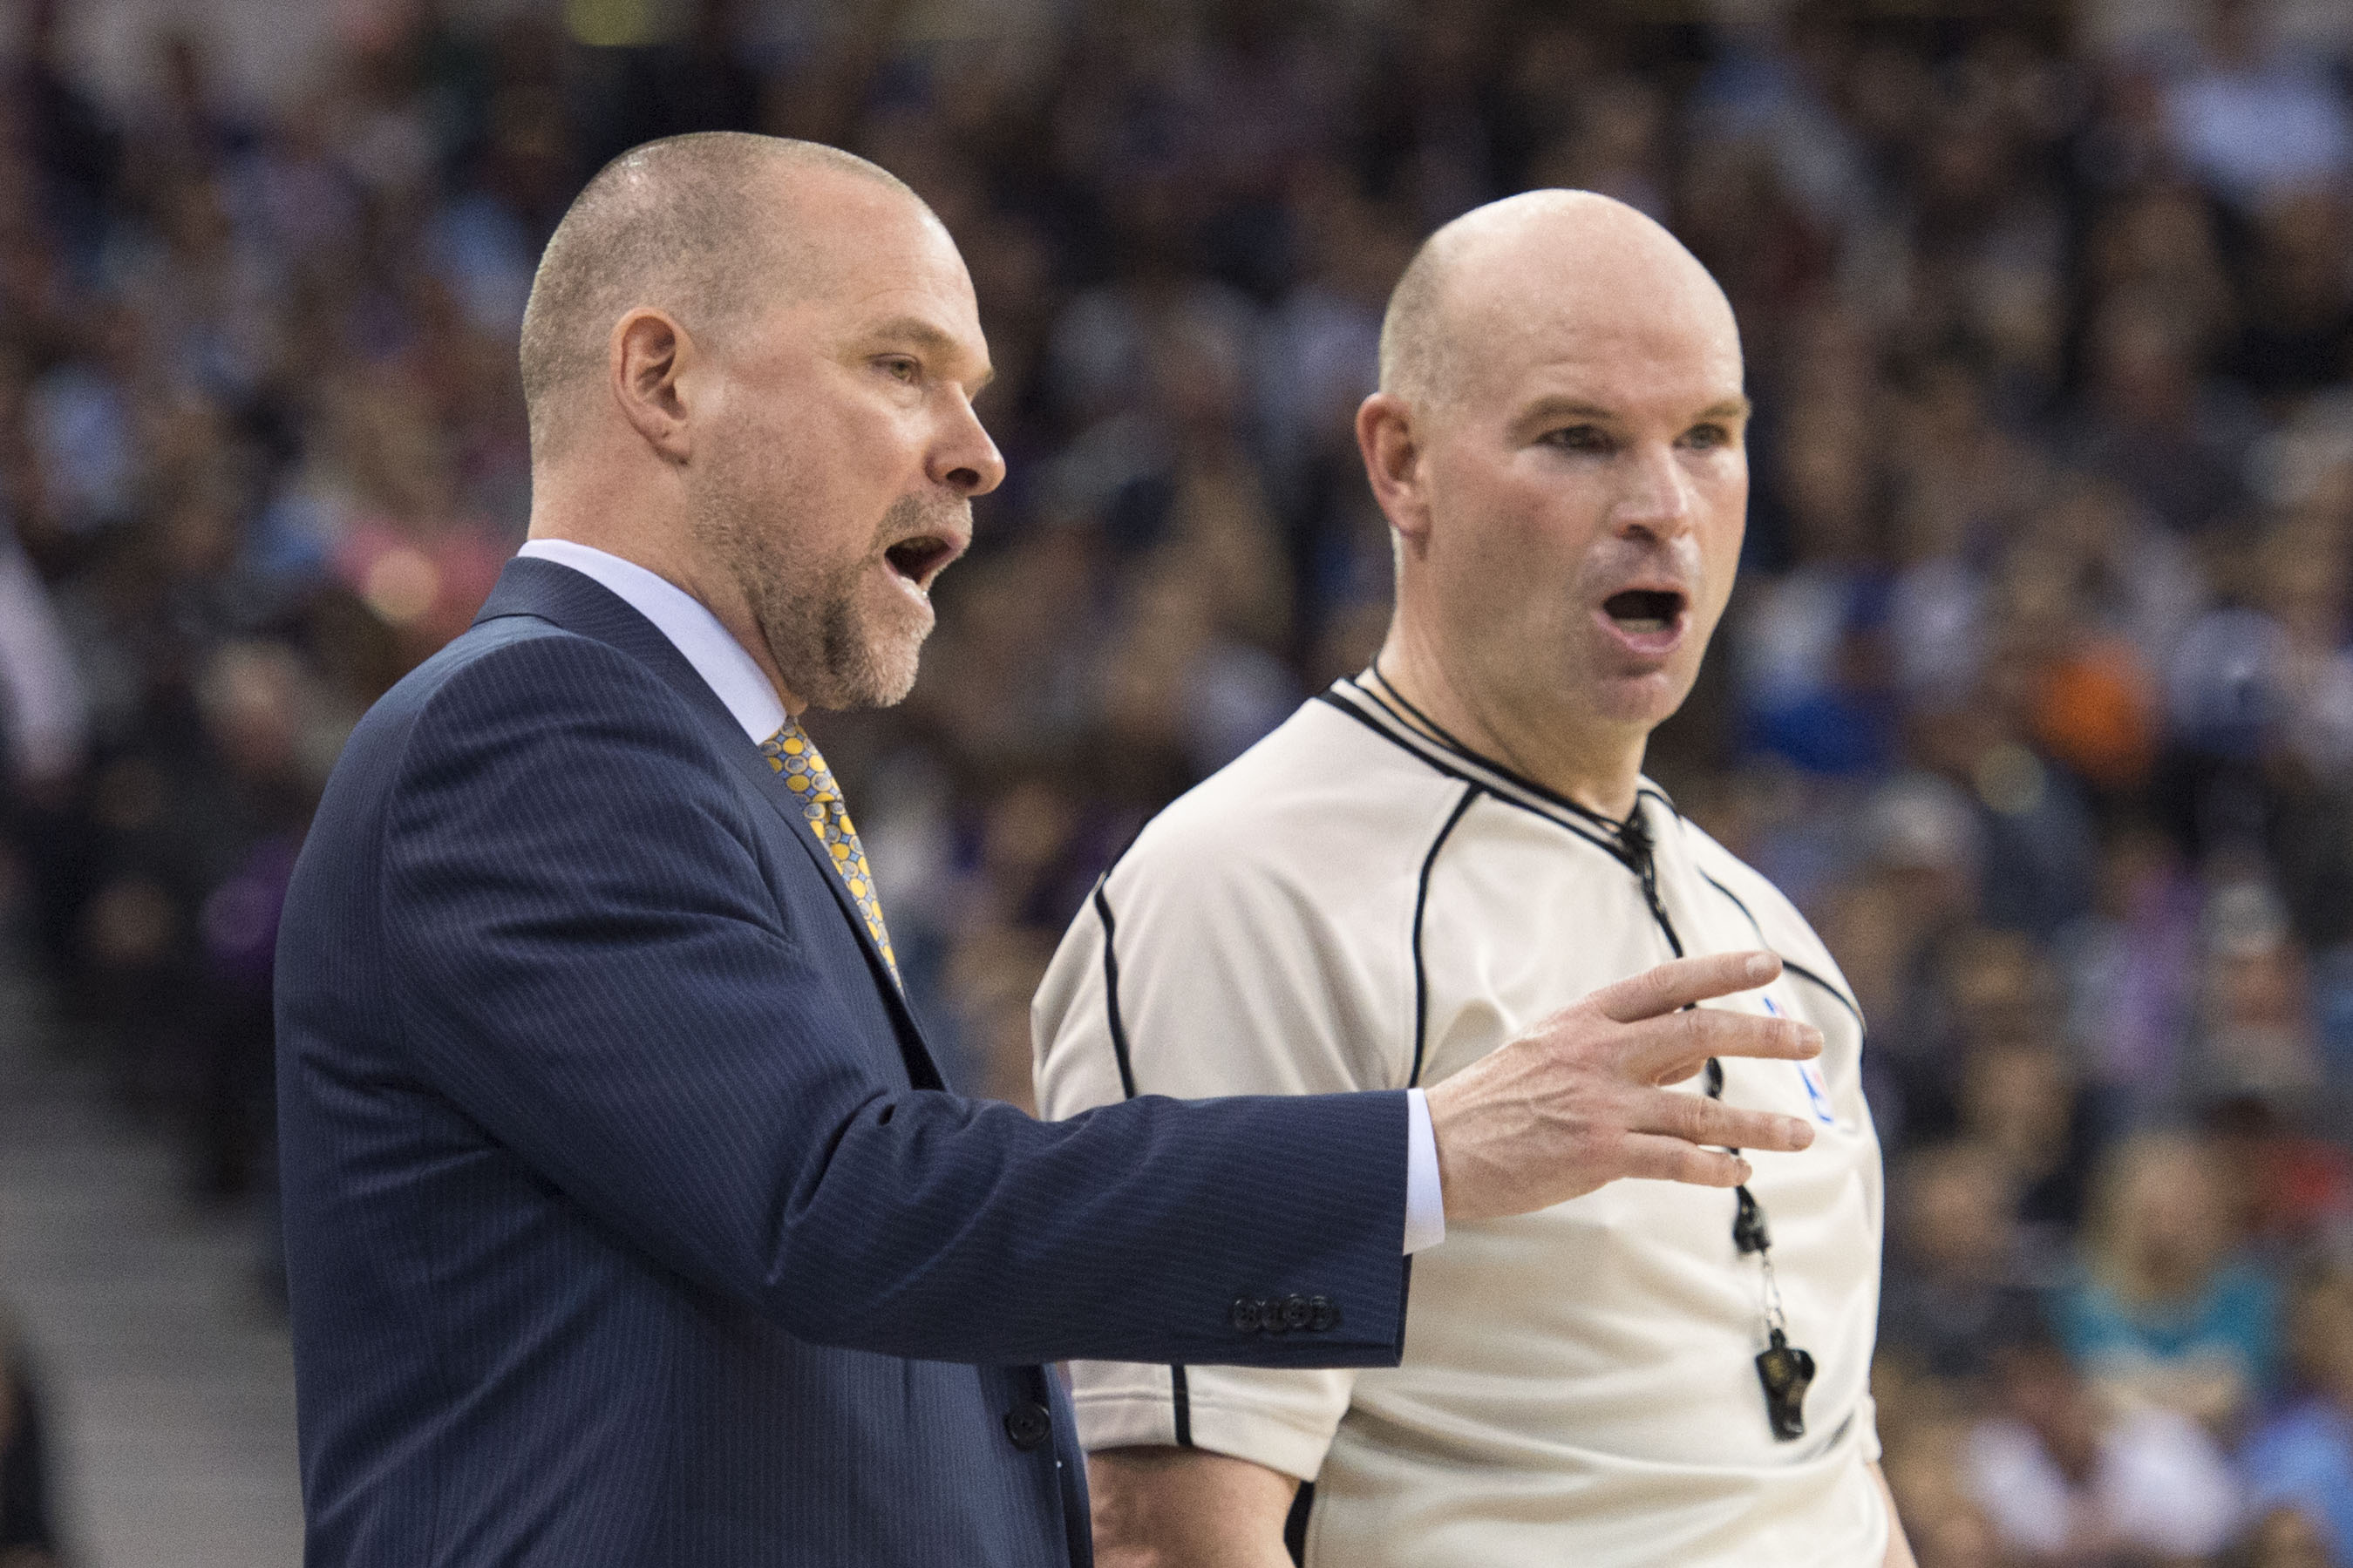 February 19, 2016; Sacramento, CA, USA; Denver Nuggets head coach Michael Malone (left) argues with NBA referee Gary Zielinski (59) during the fourth quarter against the Sacramento Kings at Sleep Train Arena. The Kings defeated the Nuggets 116-110. Mandatory Credit: Kyle Terada-USA TODAY Sports